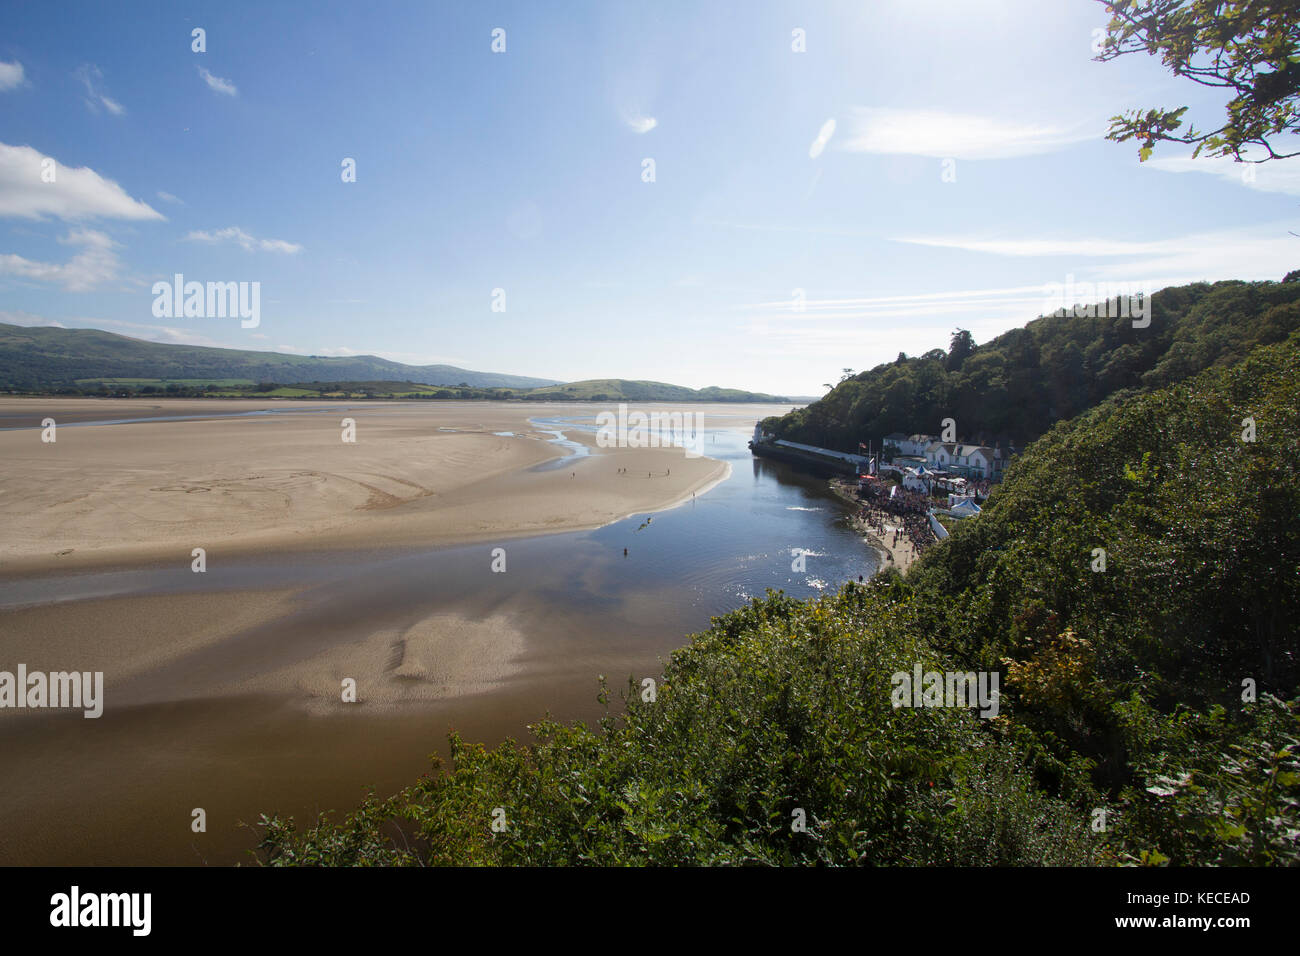 Portmeirion village in Wales. Stock Photo